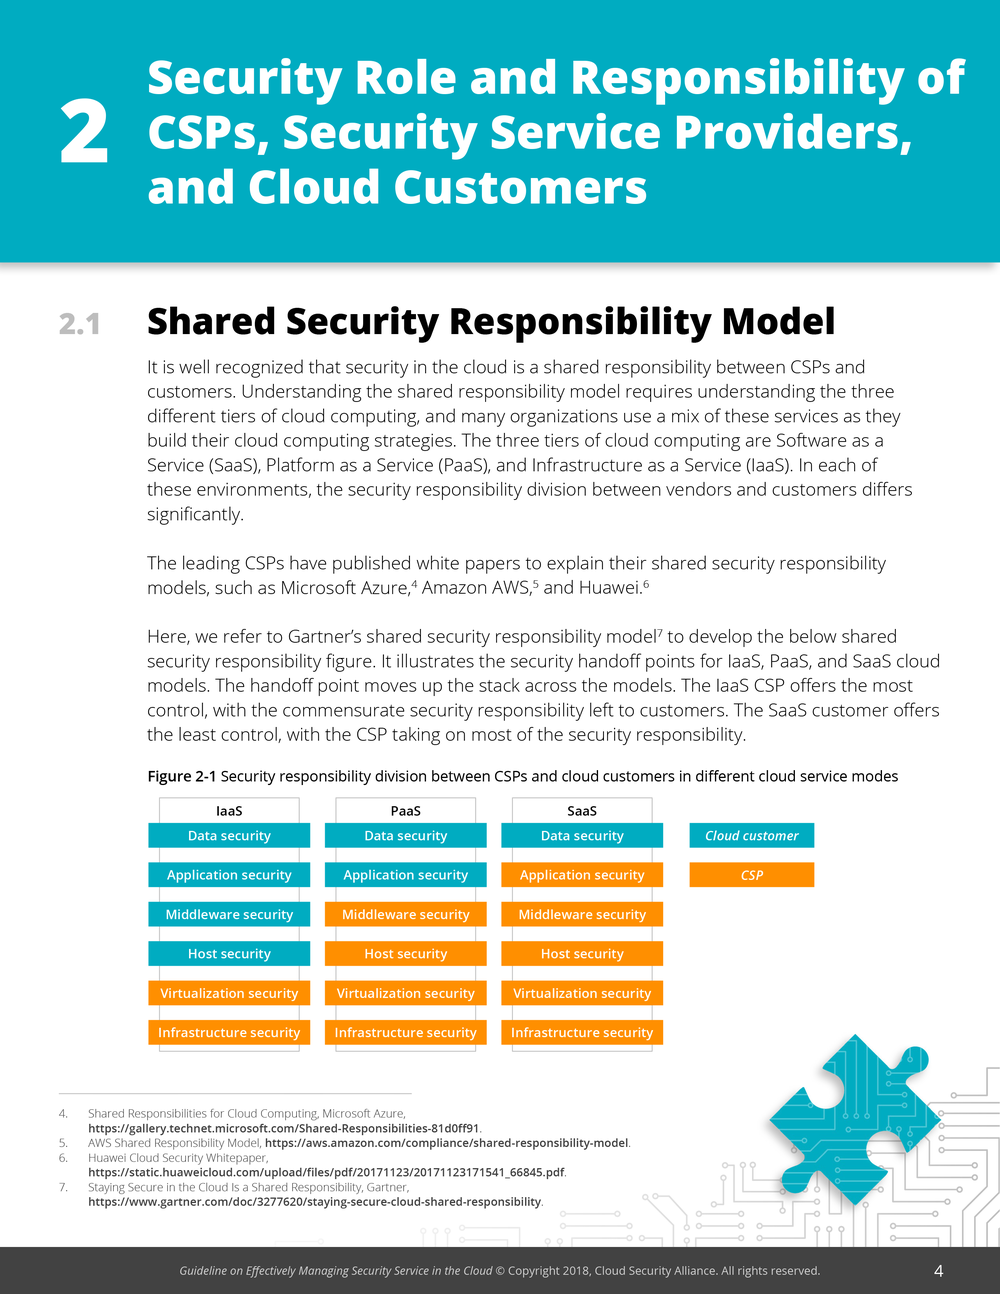 Guideline on Effectively Managing Security Service in the Cloud 10.2.18-5.png